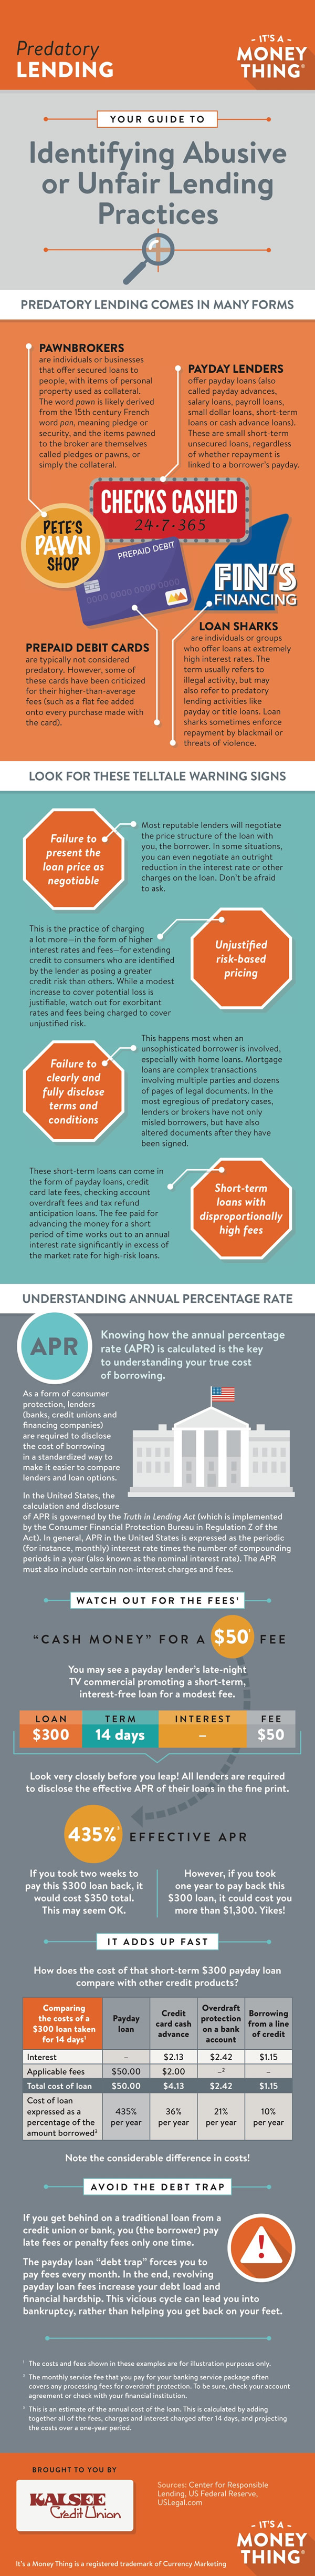 predatory lending infographic, click for transcription